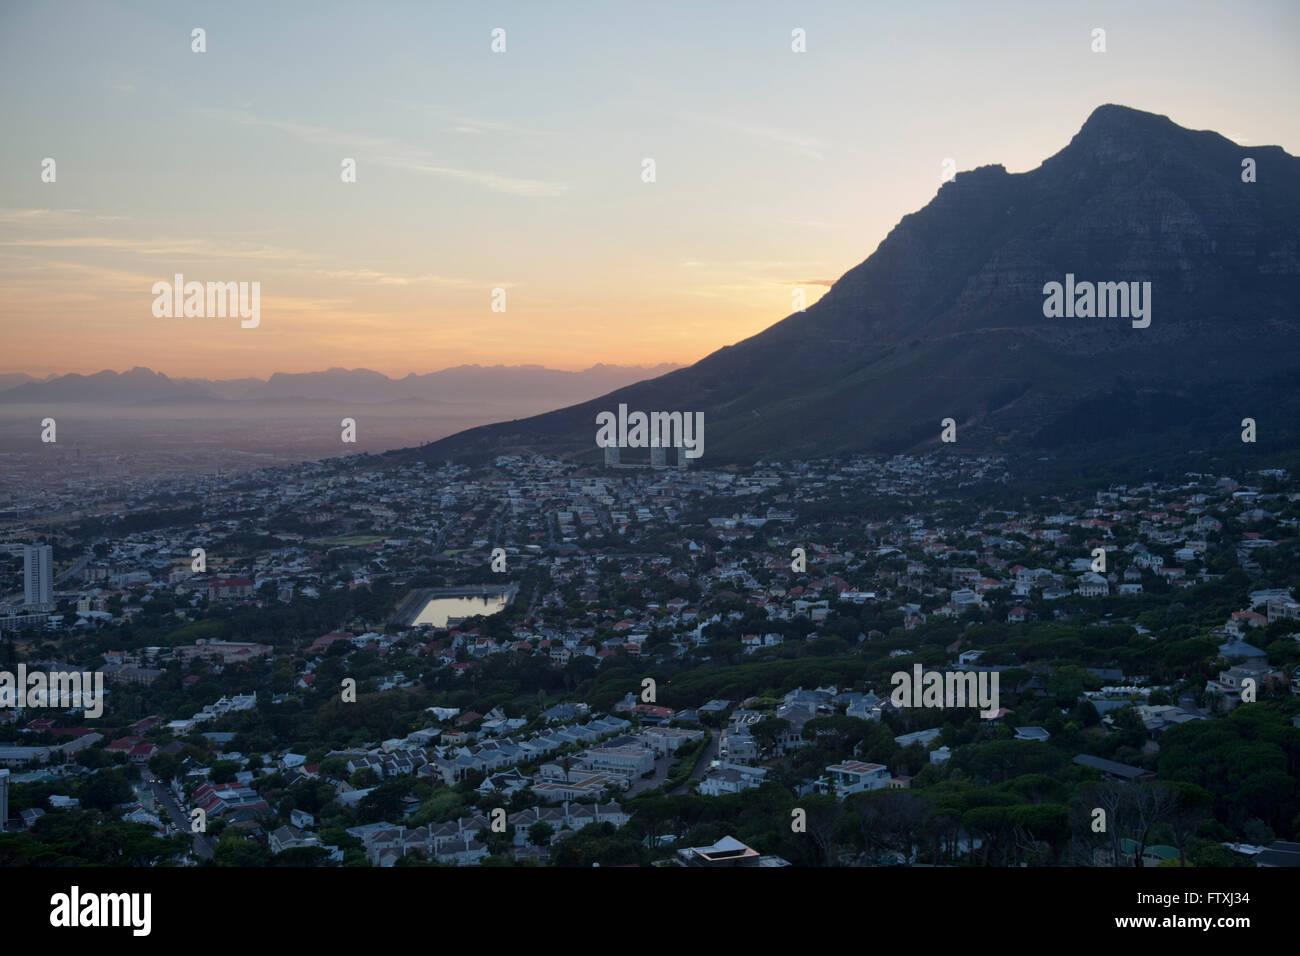 Devils Peak viewed from Lions Head early morning - Cape Town - South Africa - Stock Image